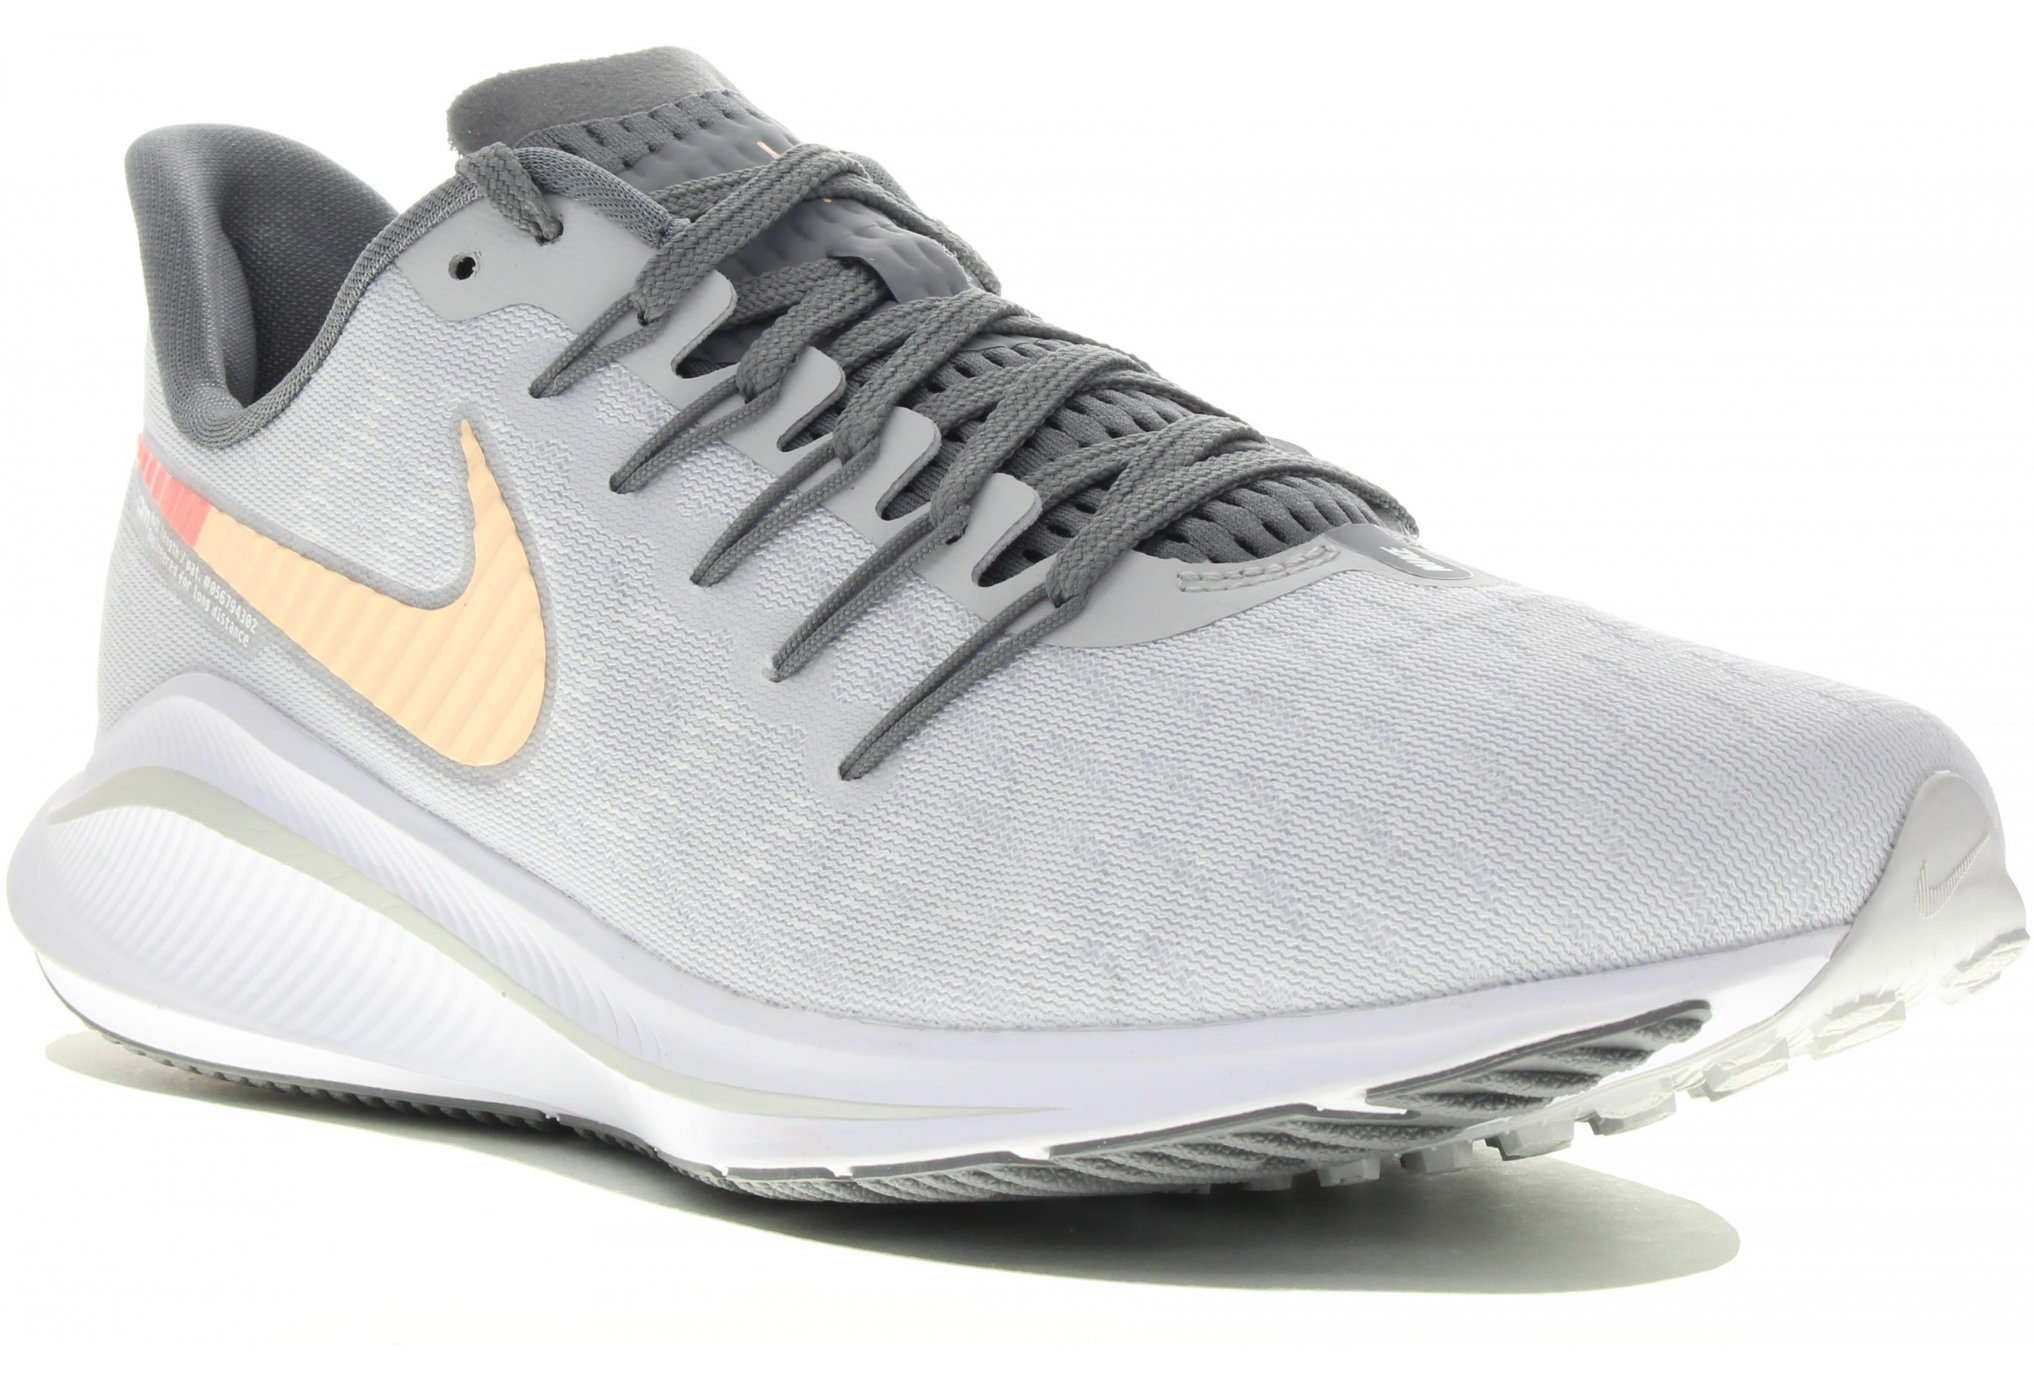 Nike Air Zoom Vomero 14 déstockage running